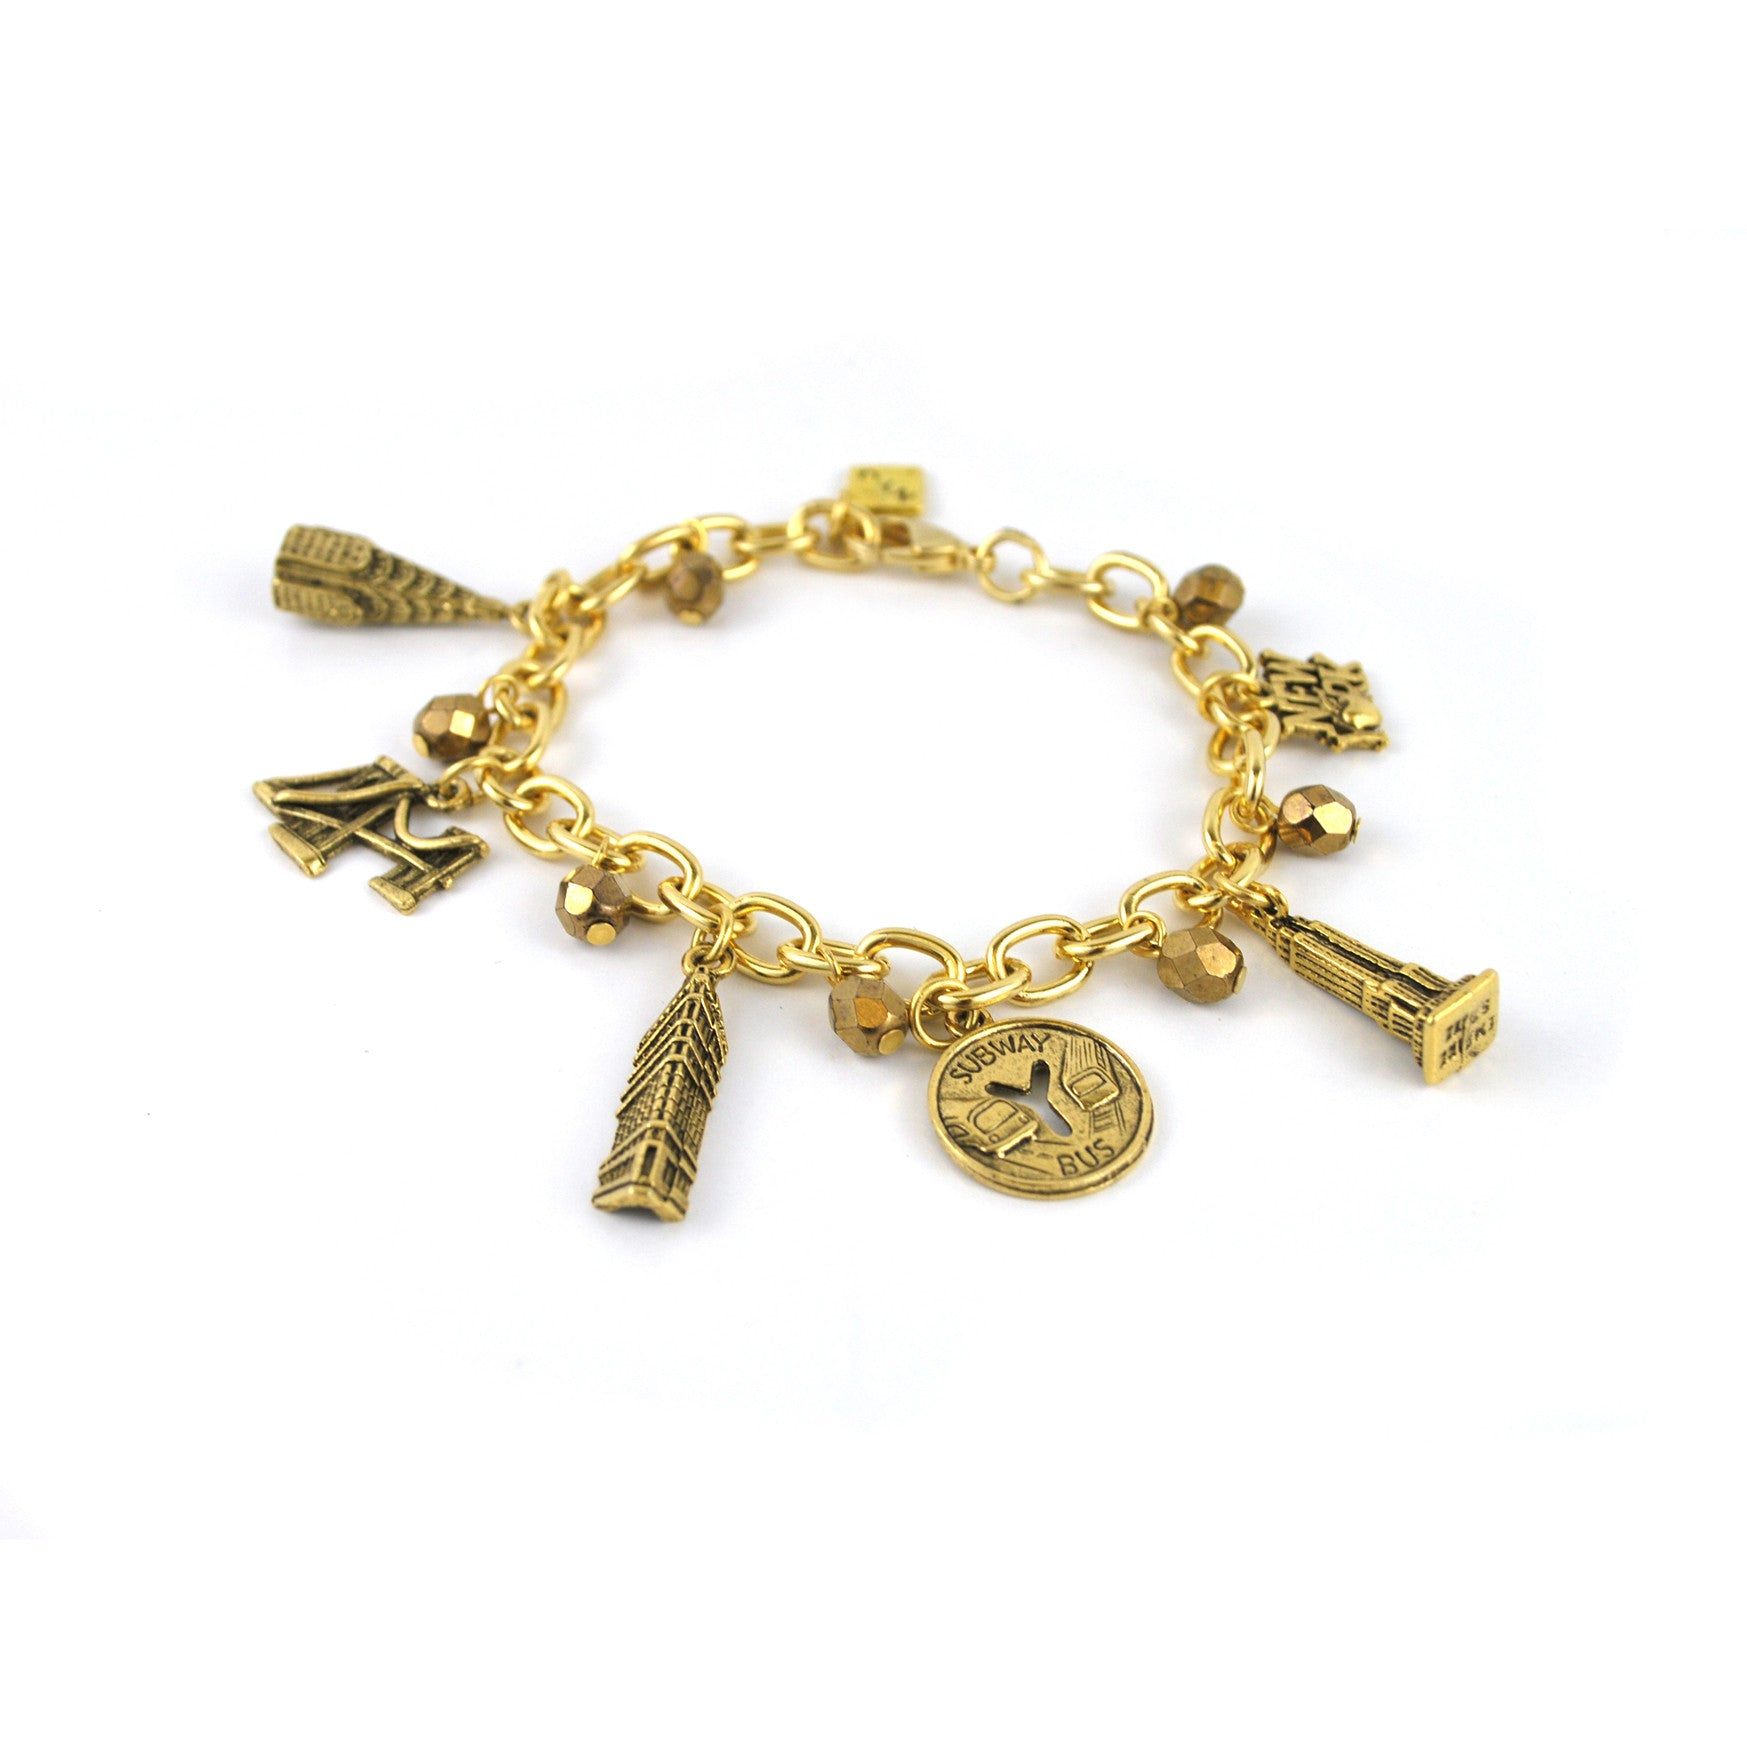 NYC Charm Bracelet – The New York Public Library Shop